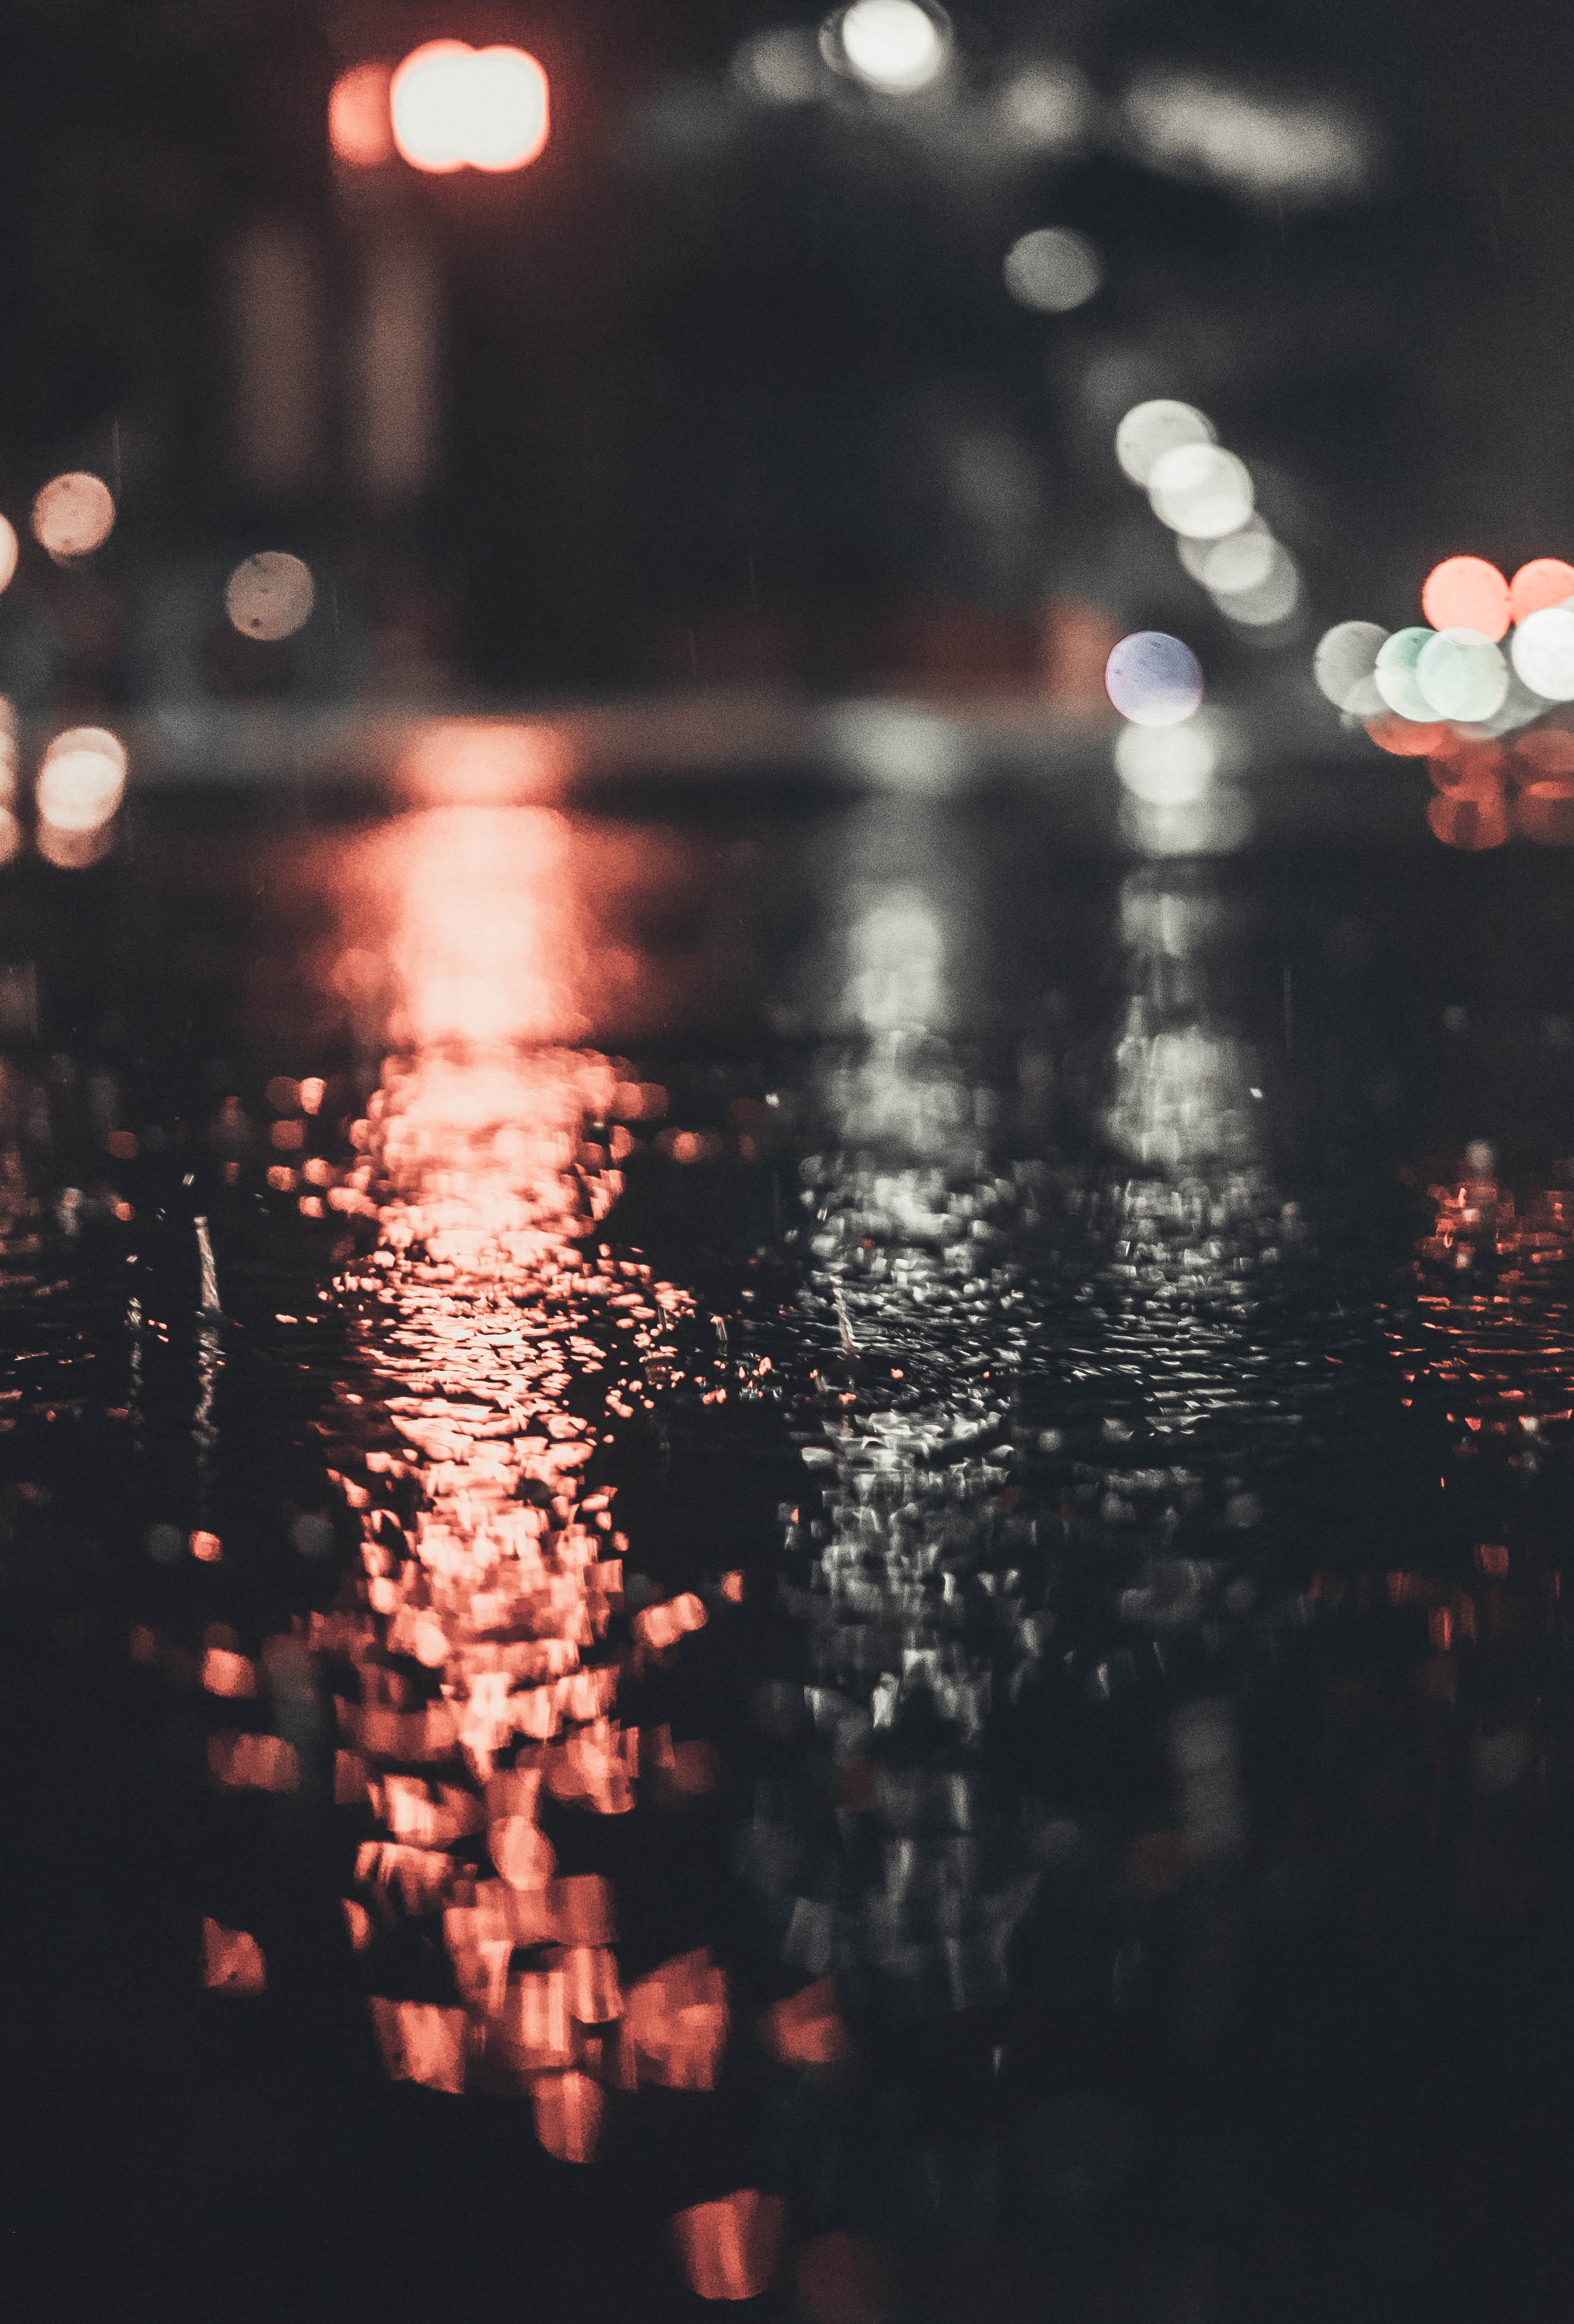 Cute Rainy Weather Wallpapers Rain Pictures Download Free Images On Unsplash